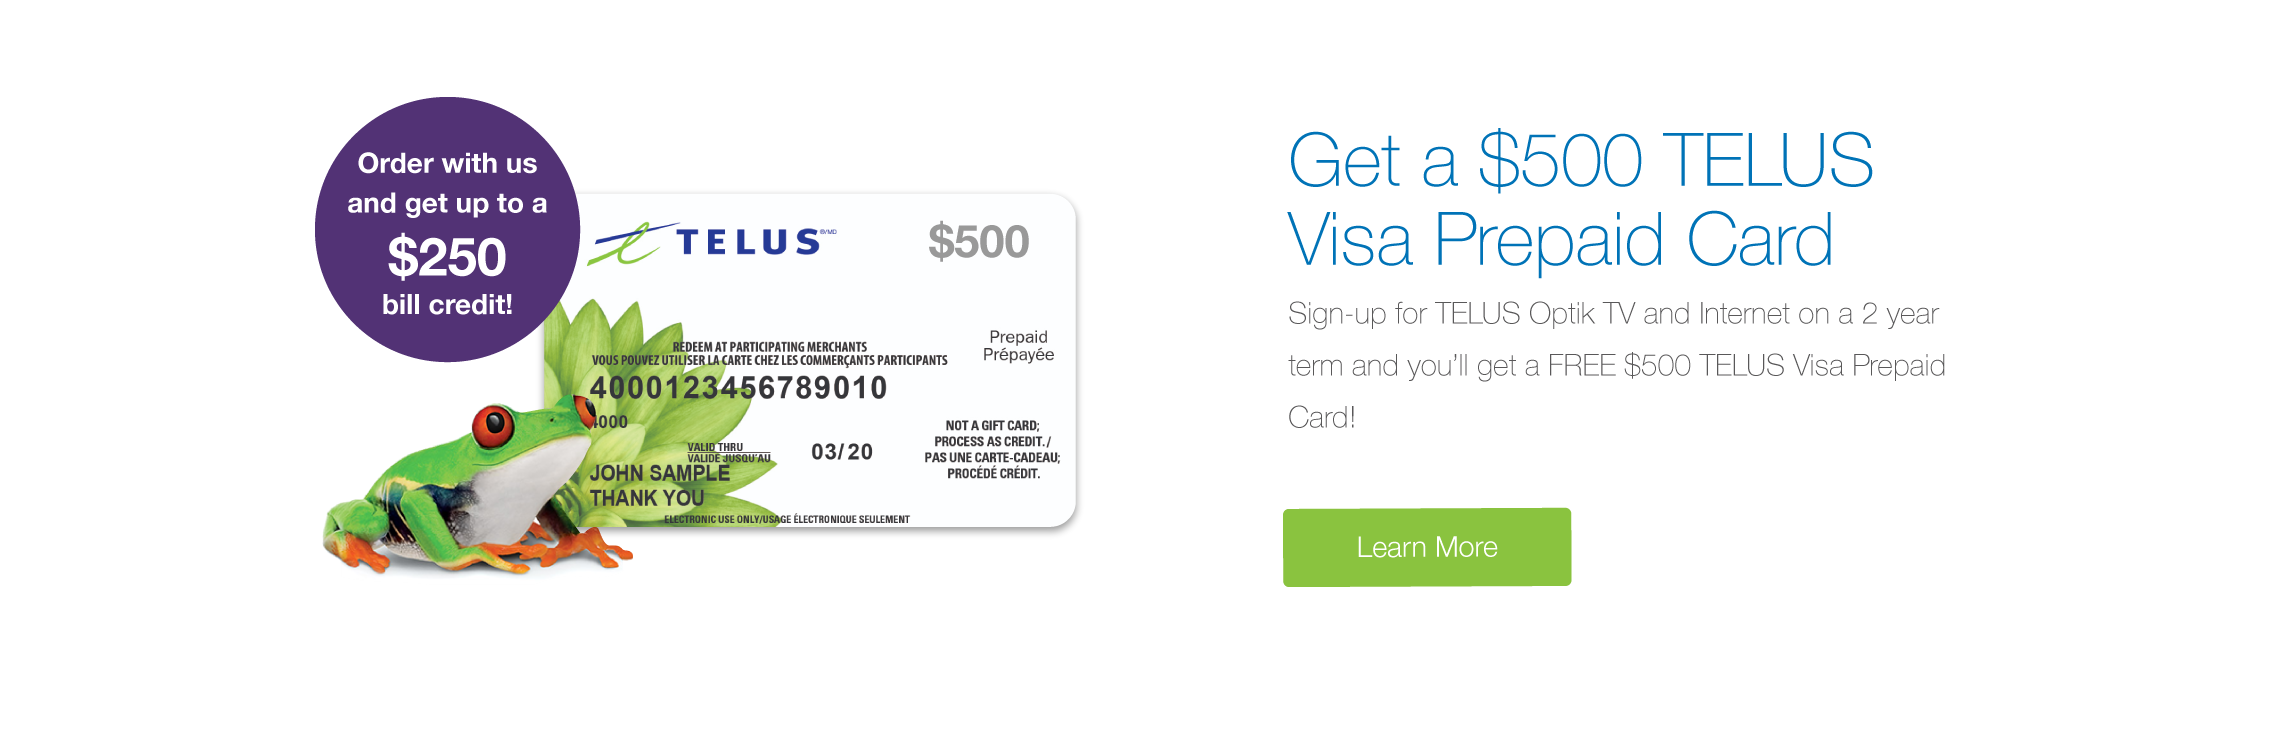 Get a $500 Prepaid Visa Card with Optik TV and Internet